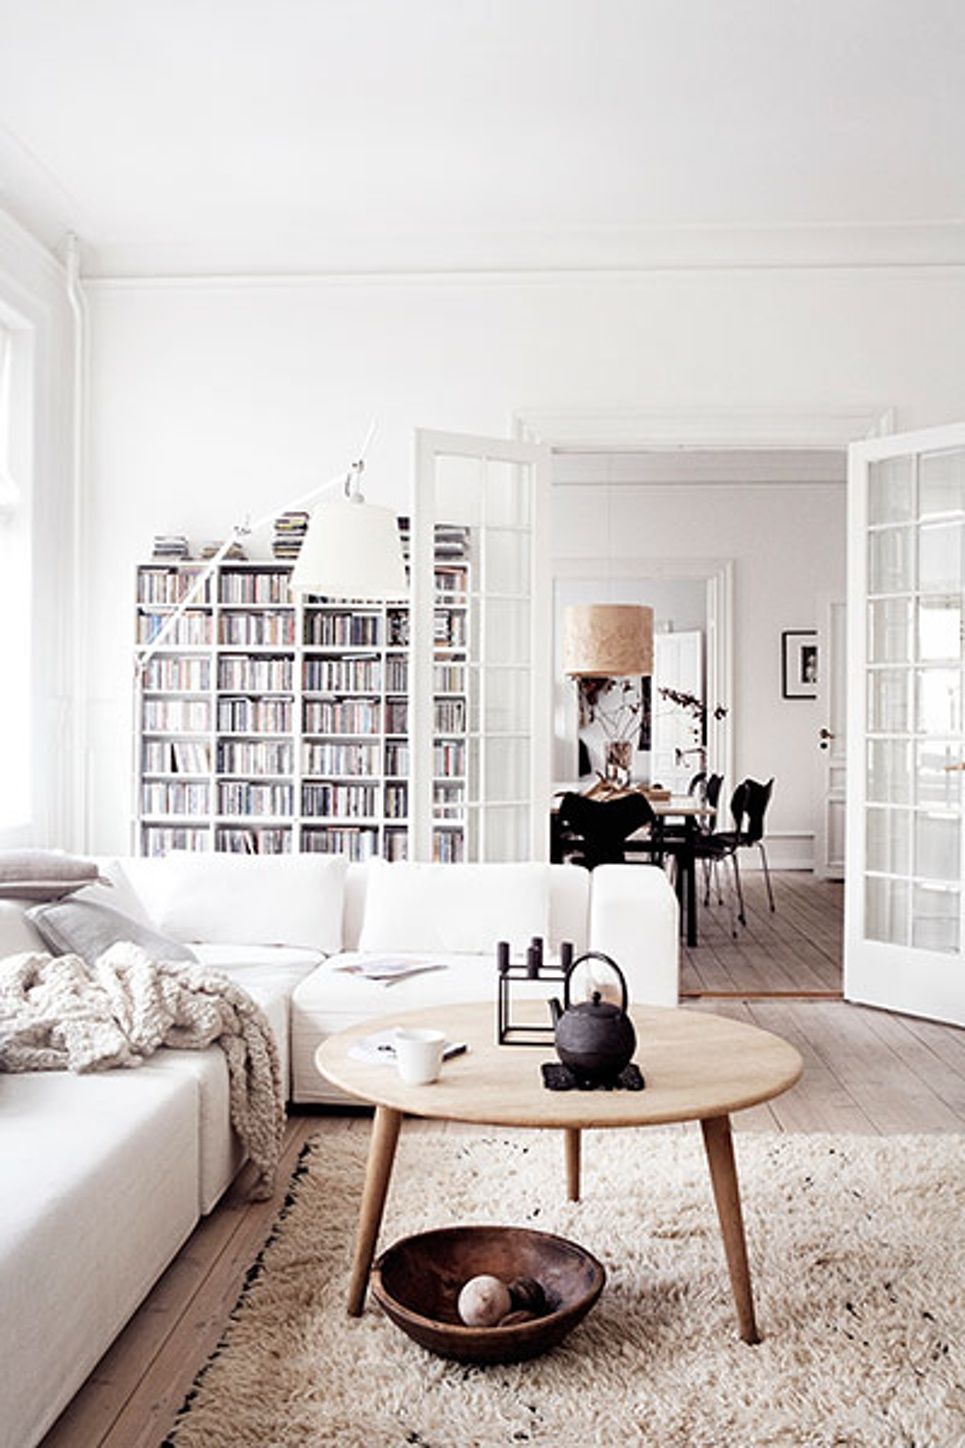 Light in the dark danish home style in pictures life and style the guardian